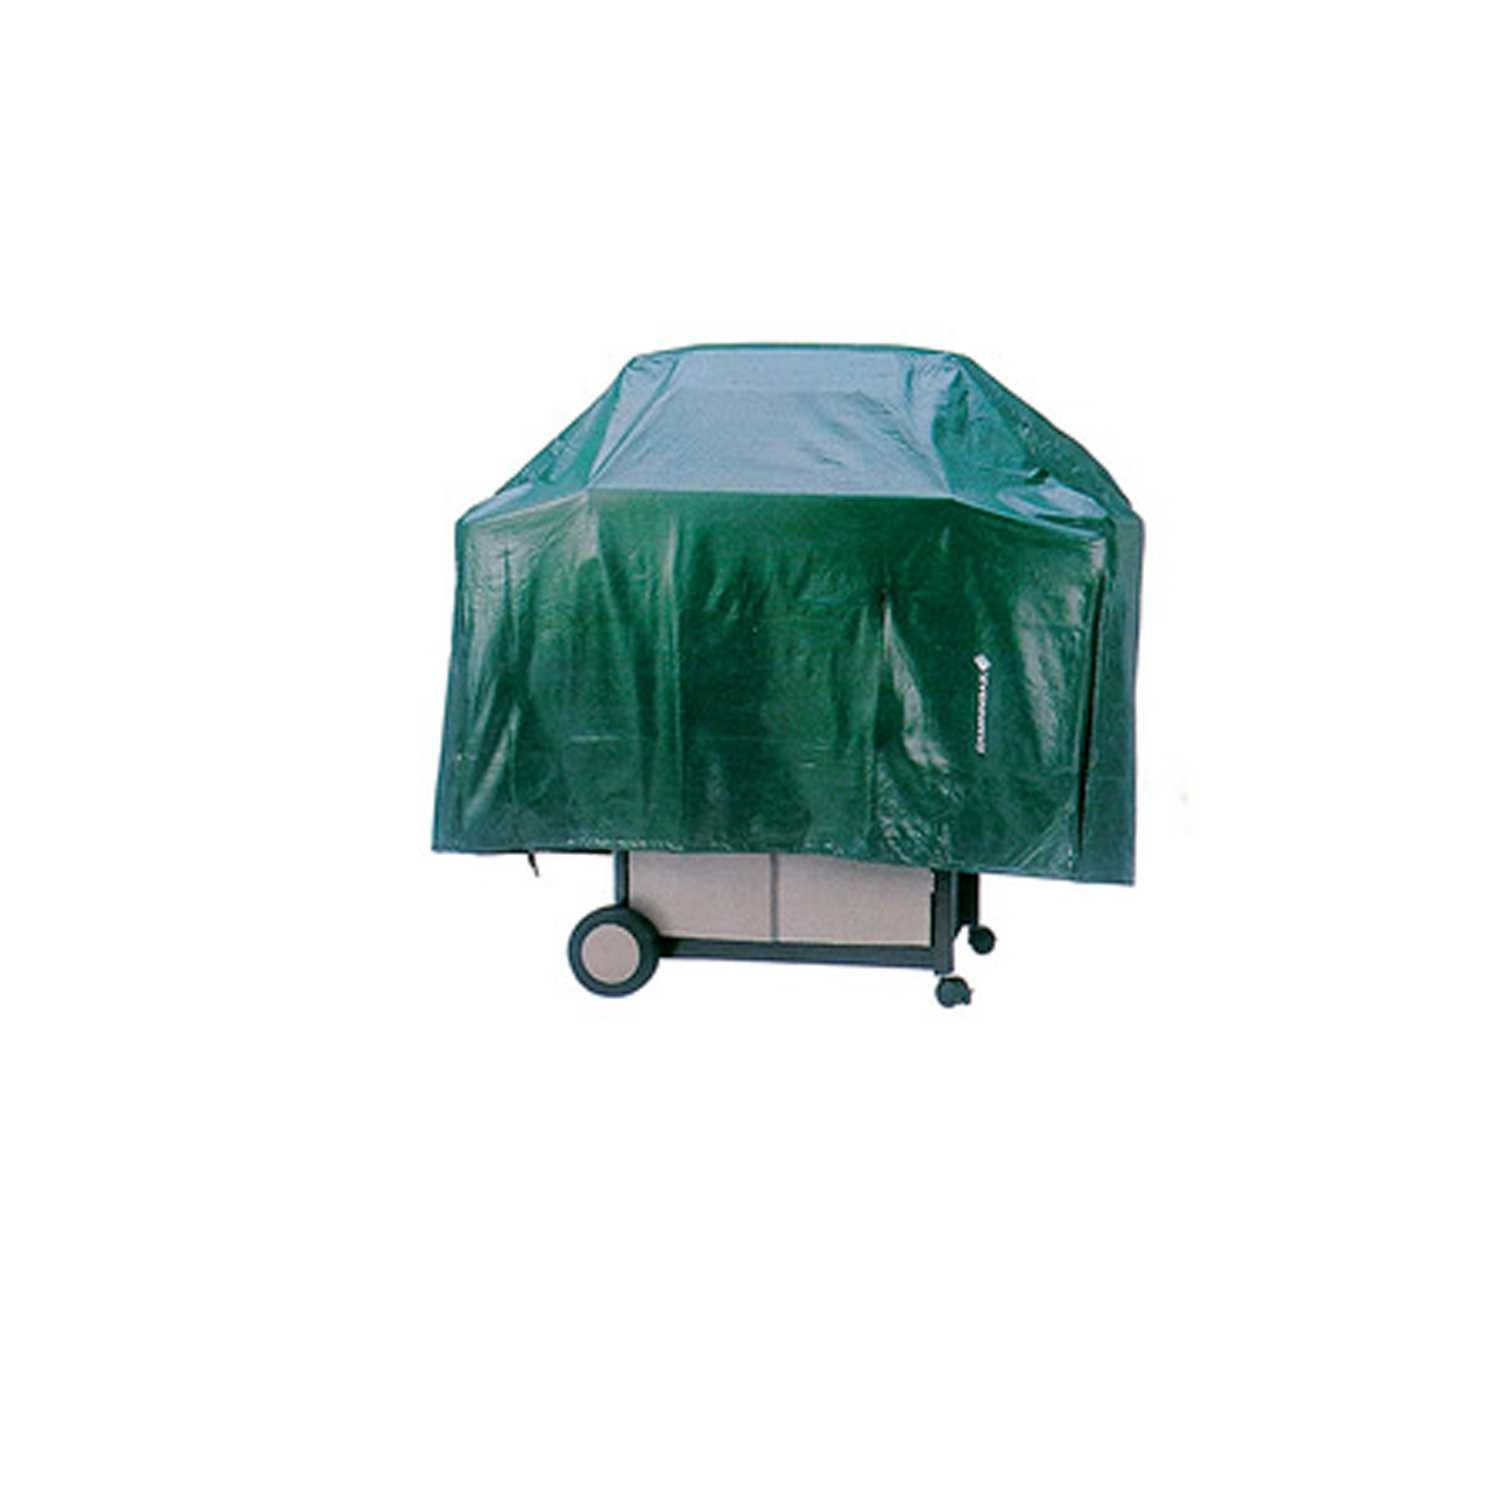 Custodia per barbecue in pvc CAMPINGAZ cm 136x62x105h